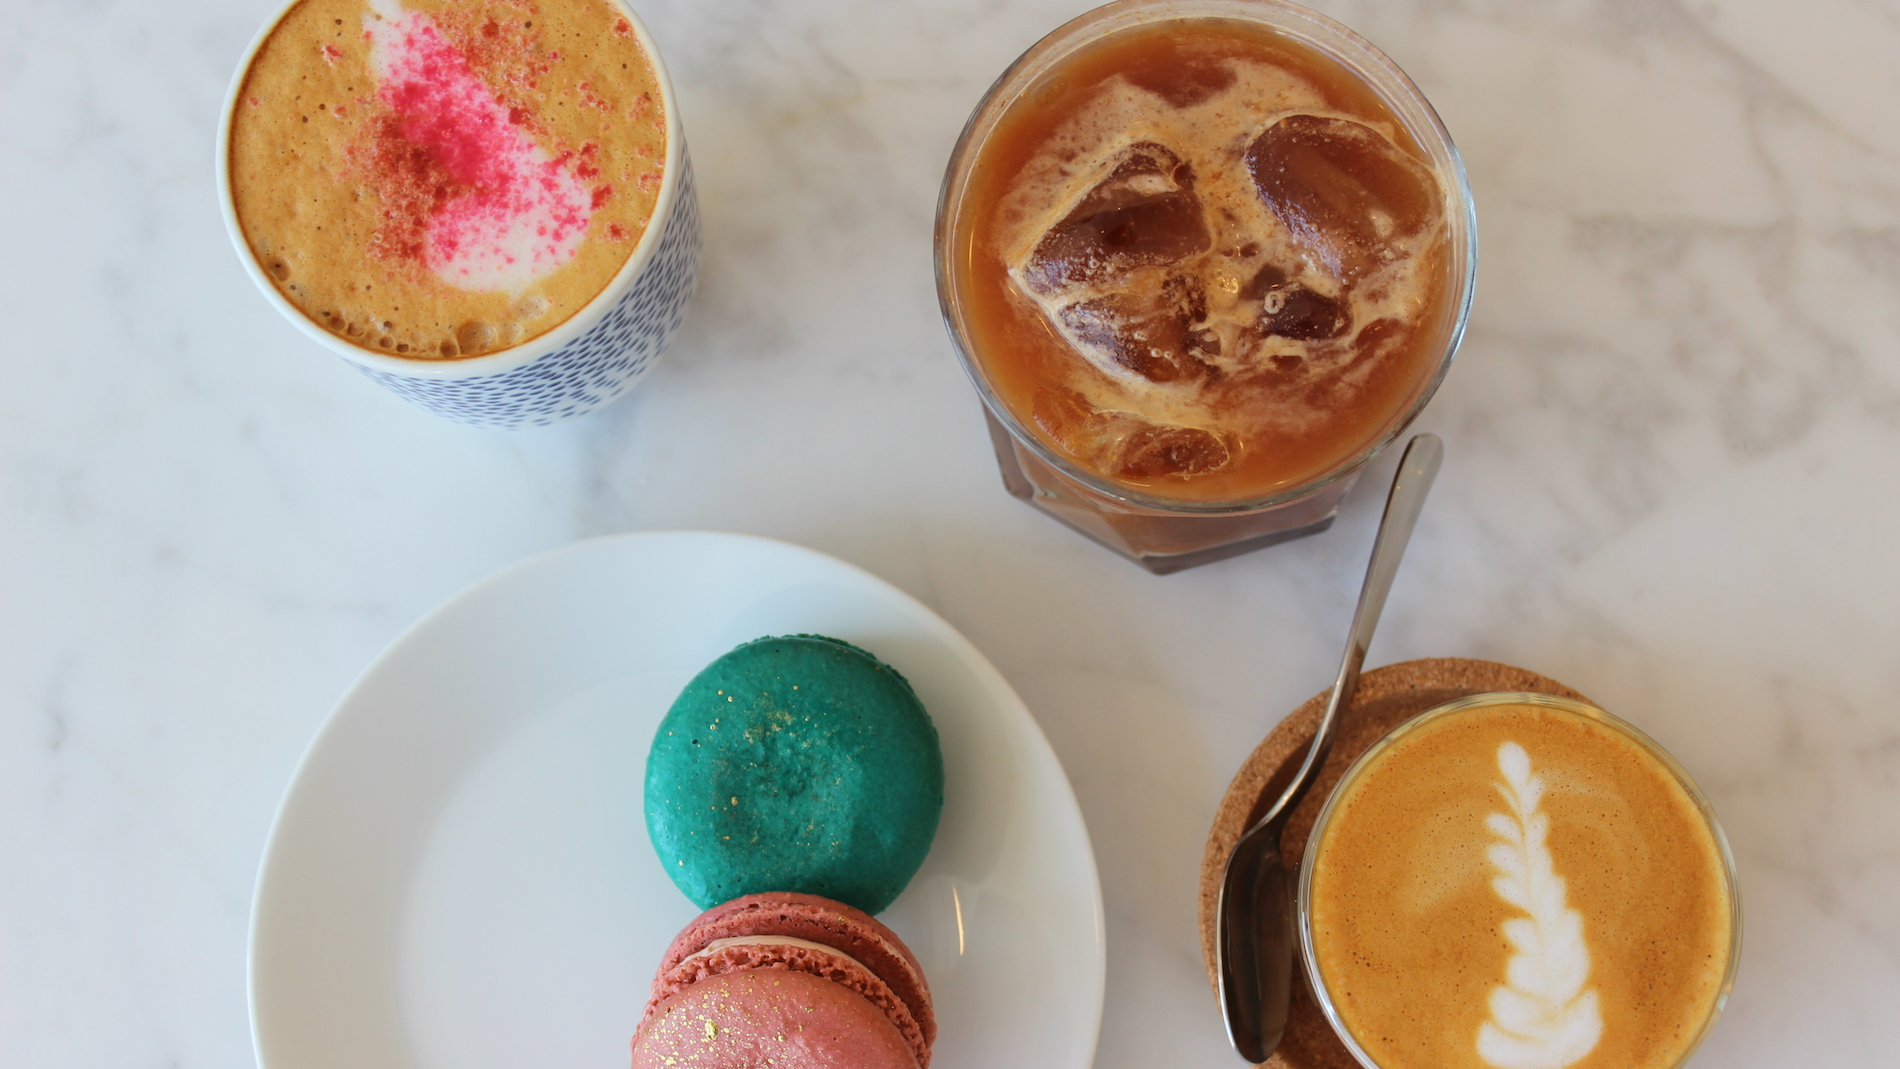 three coffee beverages and two macarons